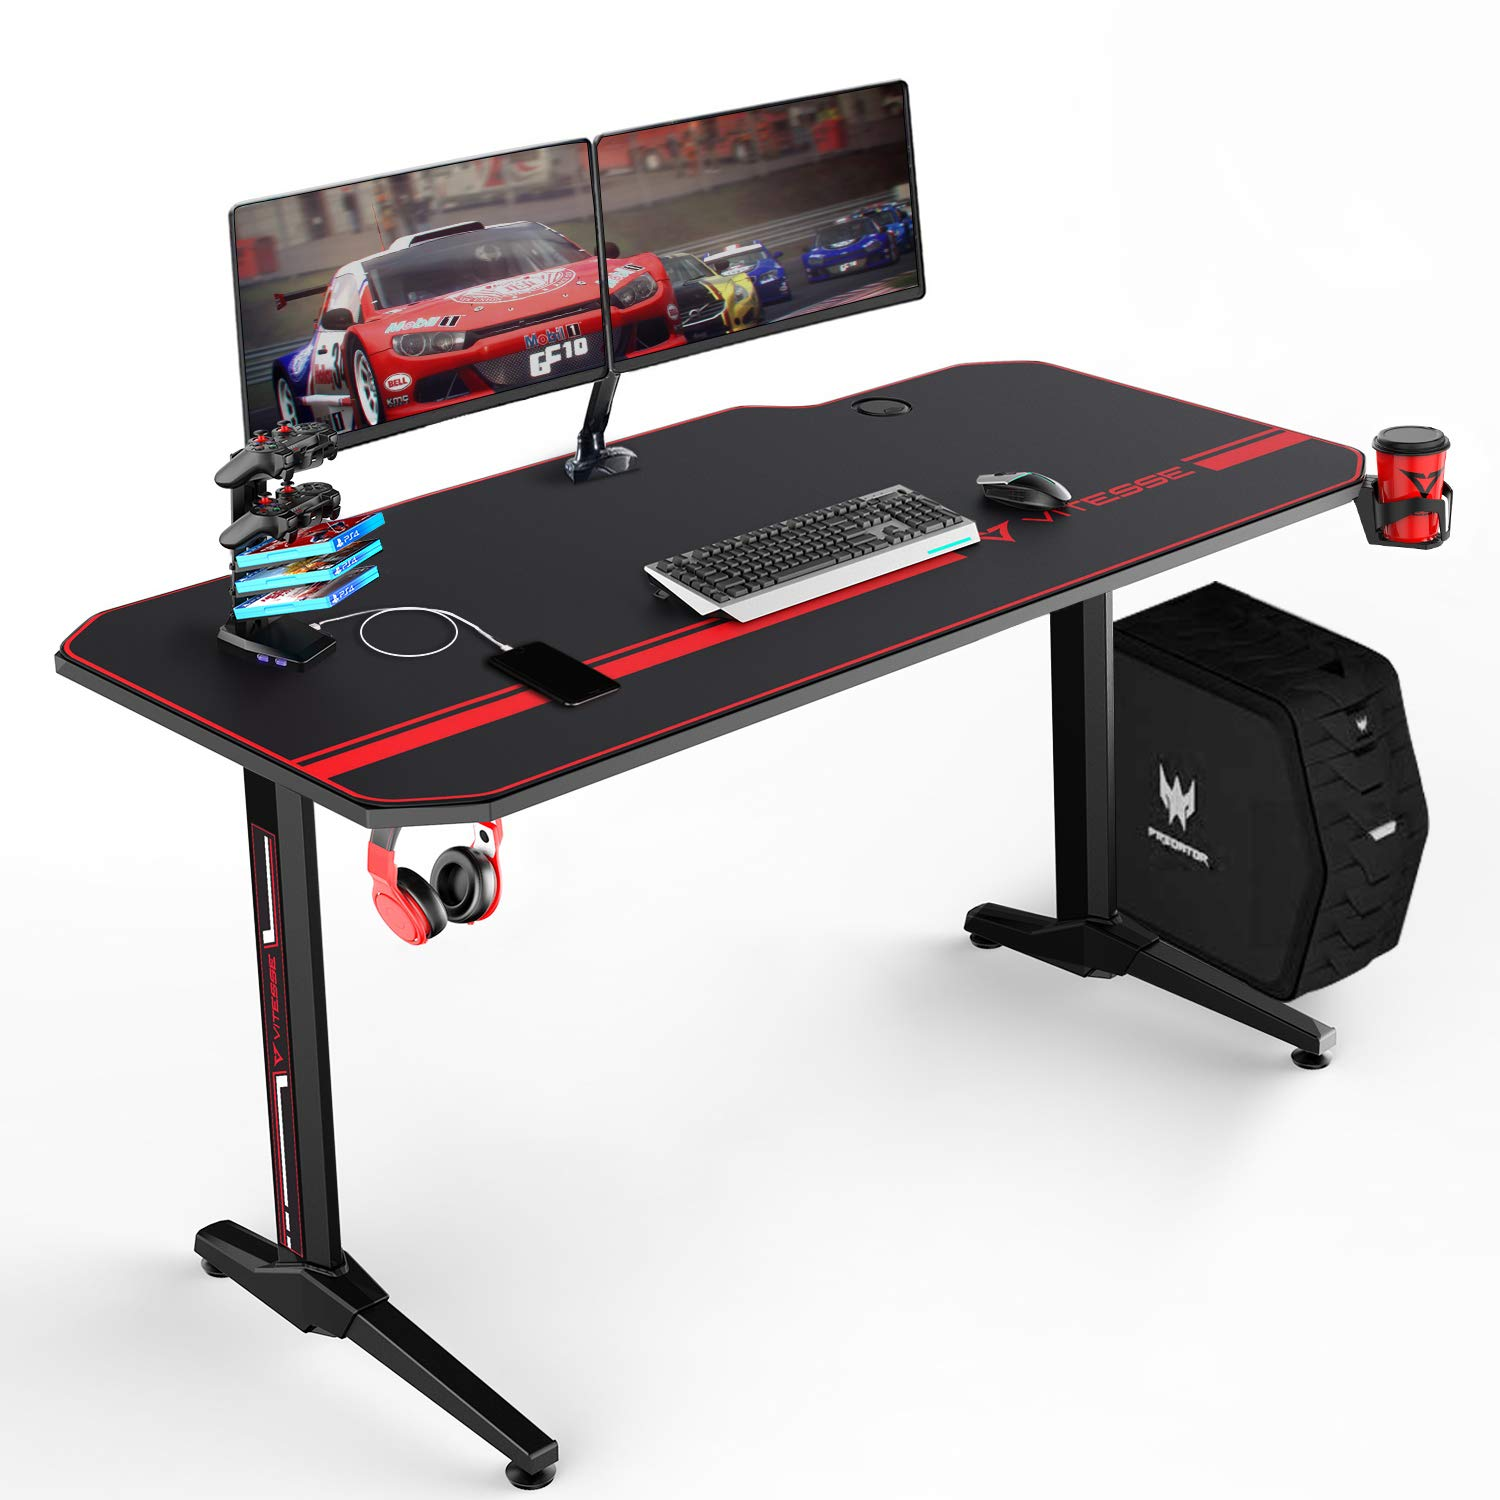 VIT 55 Inch Ergonomic Gaming Desk, T-Shaped Office PC Computer Desk with Full Desk Mouse Pad, Gamer Tables Pro with USB Gaming Handle Rack, Stand Cup Holder Headphone Hook 55 in BLK